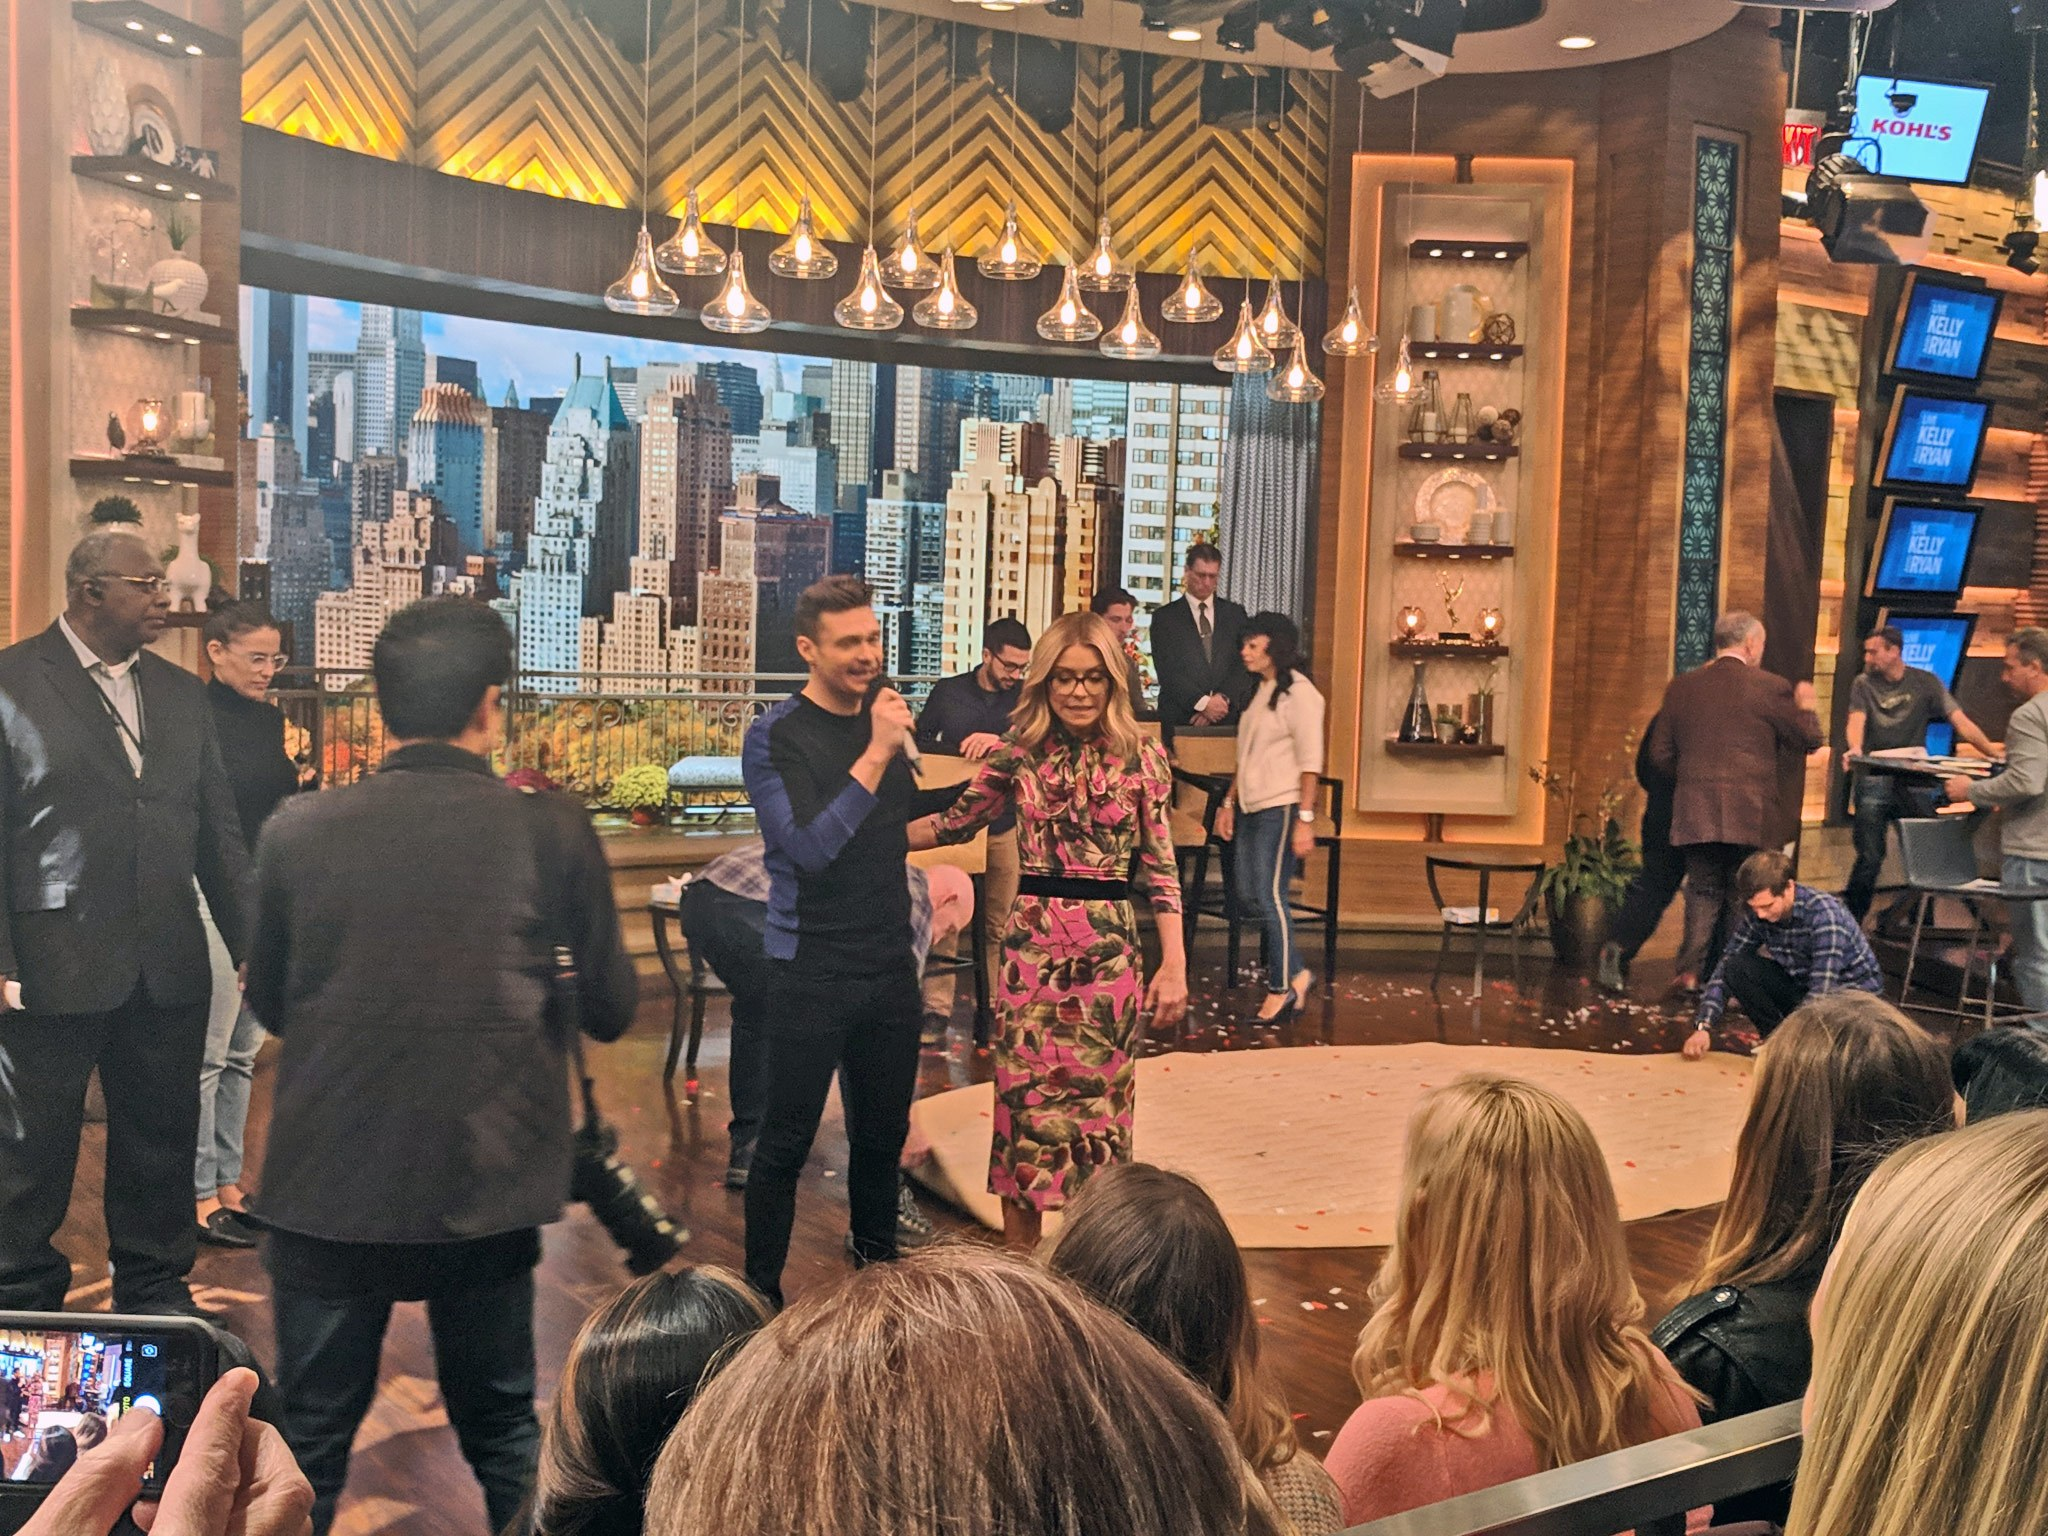 Kelly Ripa and Ryan Seacrest on the set of Live with Kelly and Ryan